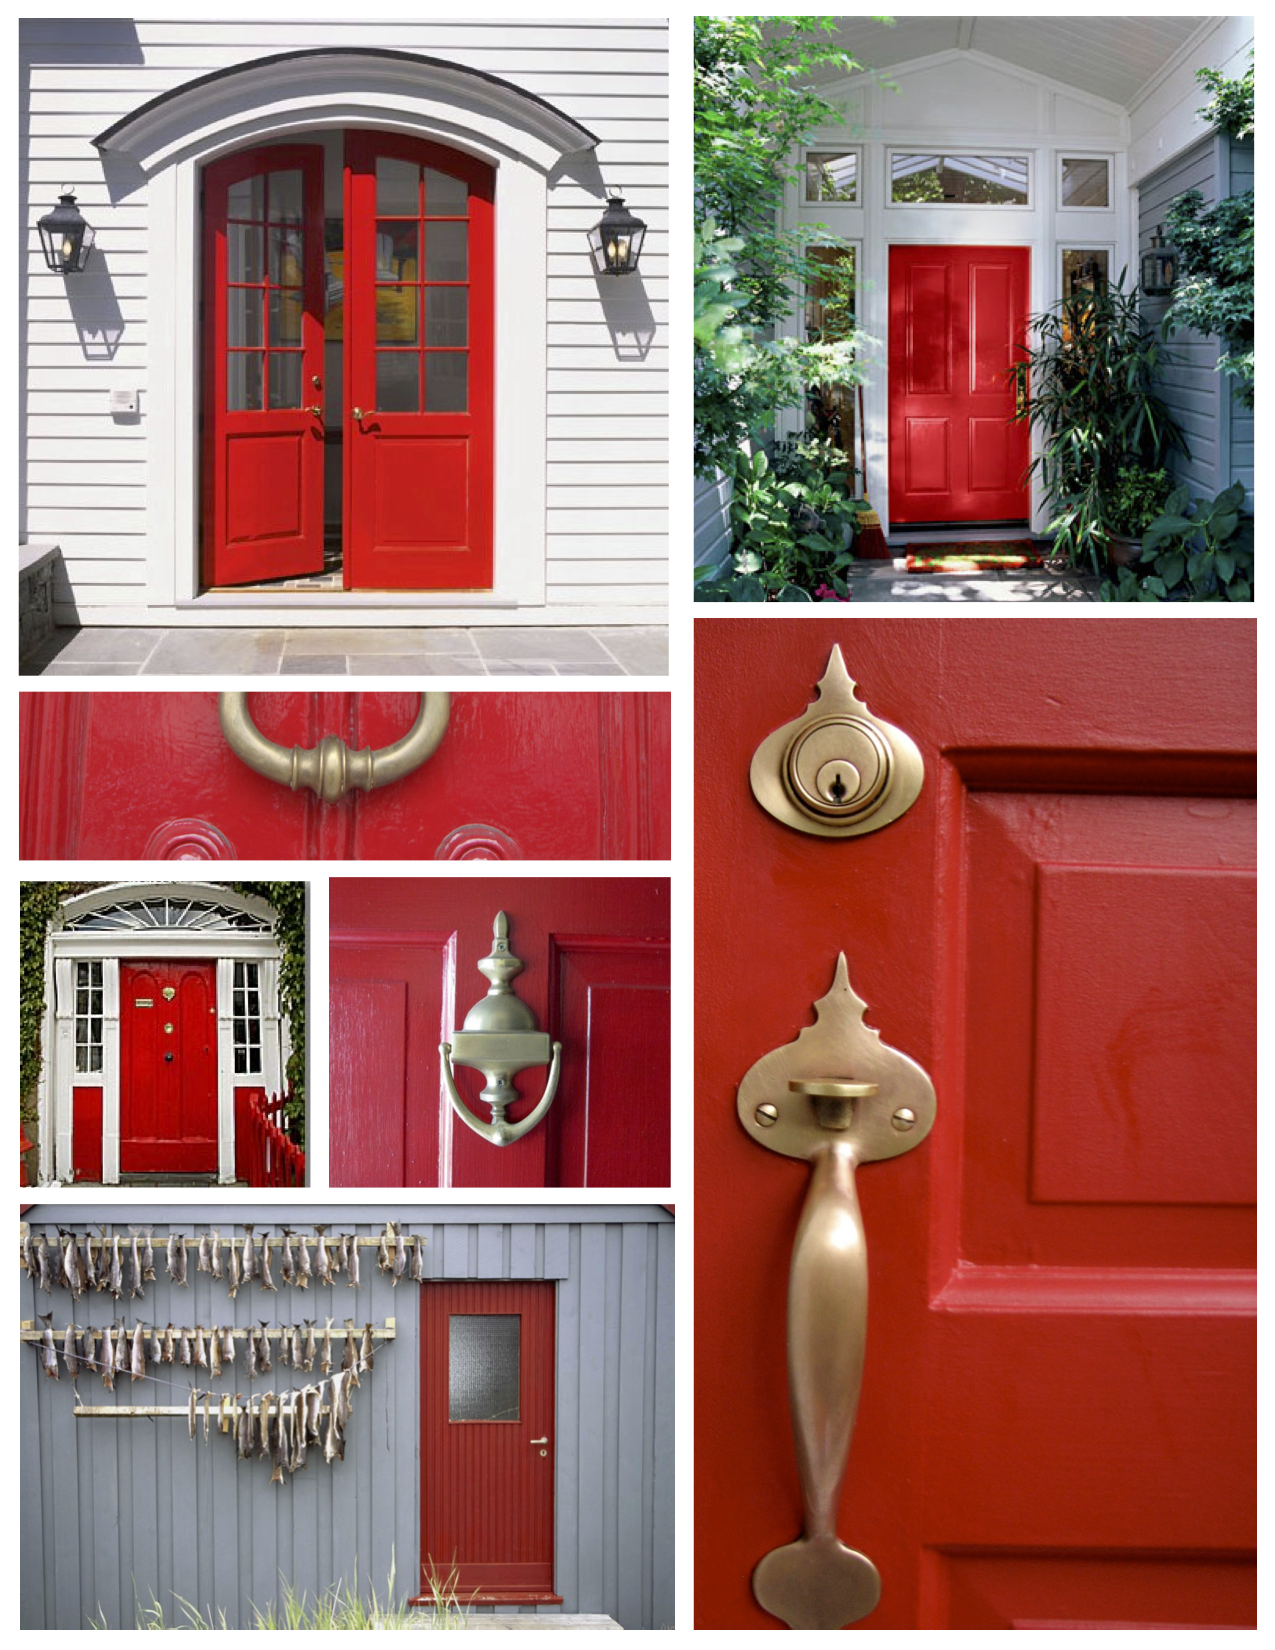 ... Maximum Impact: Curb Appeal With The Brilliant Red Painted Door